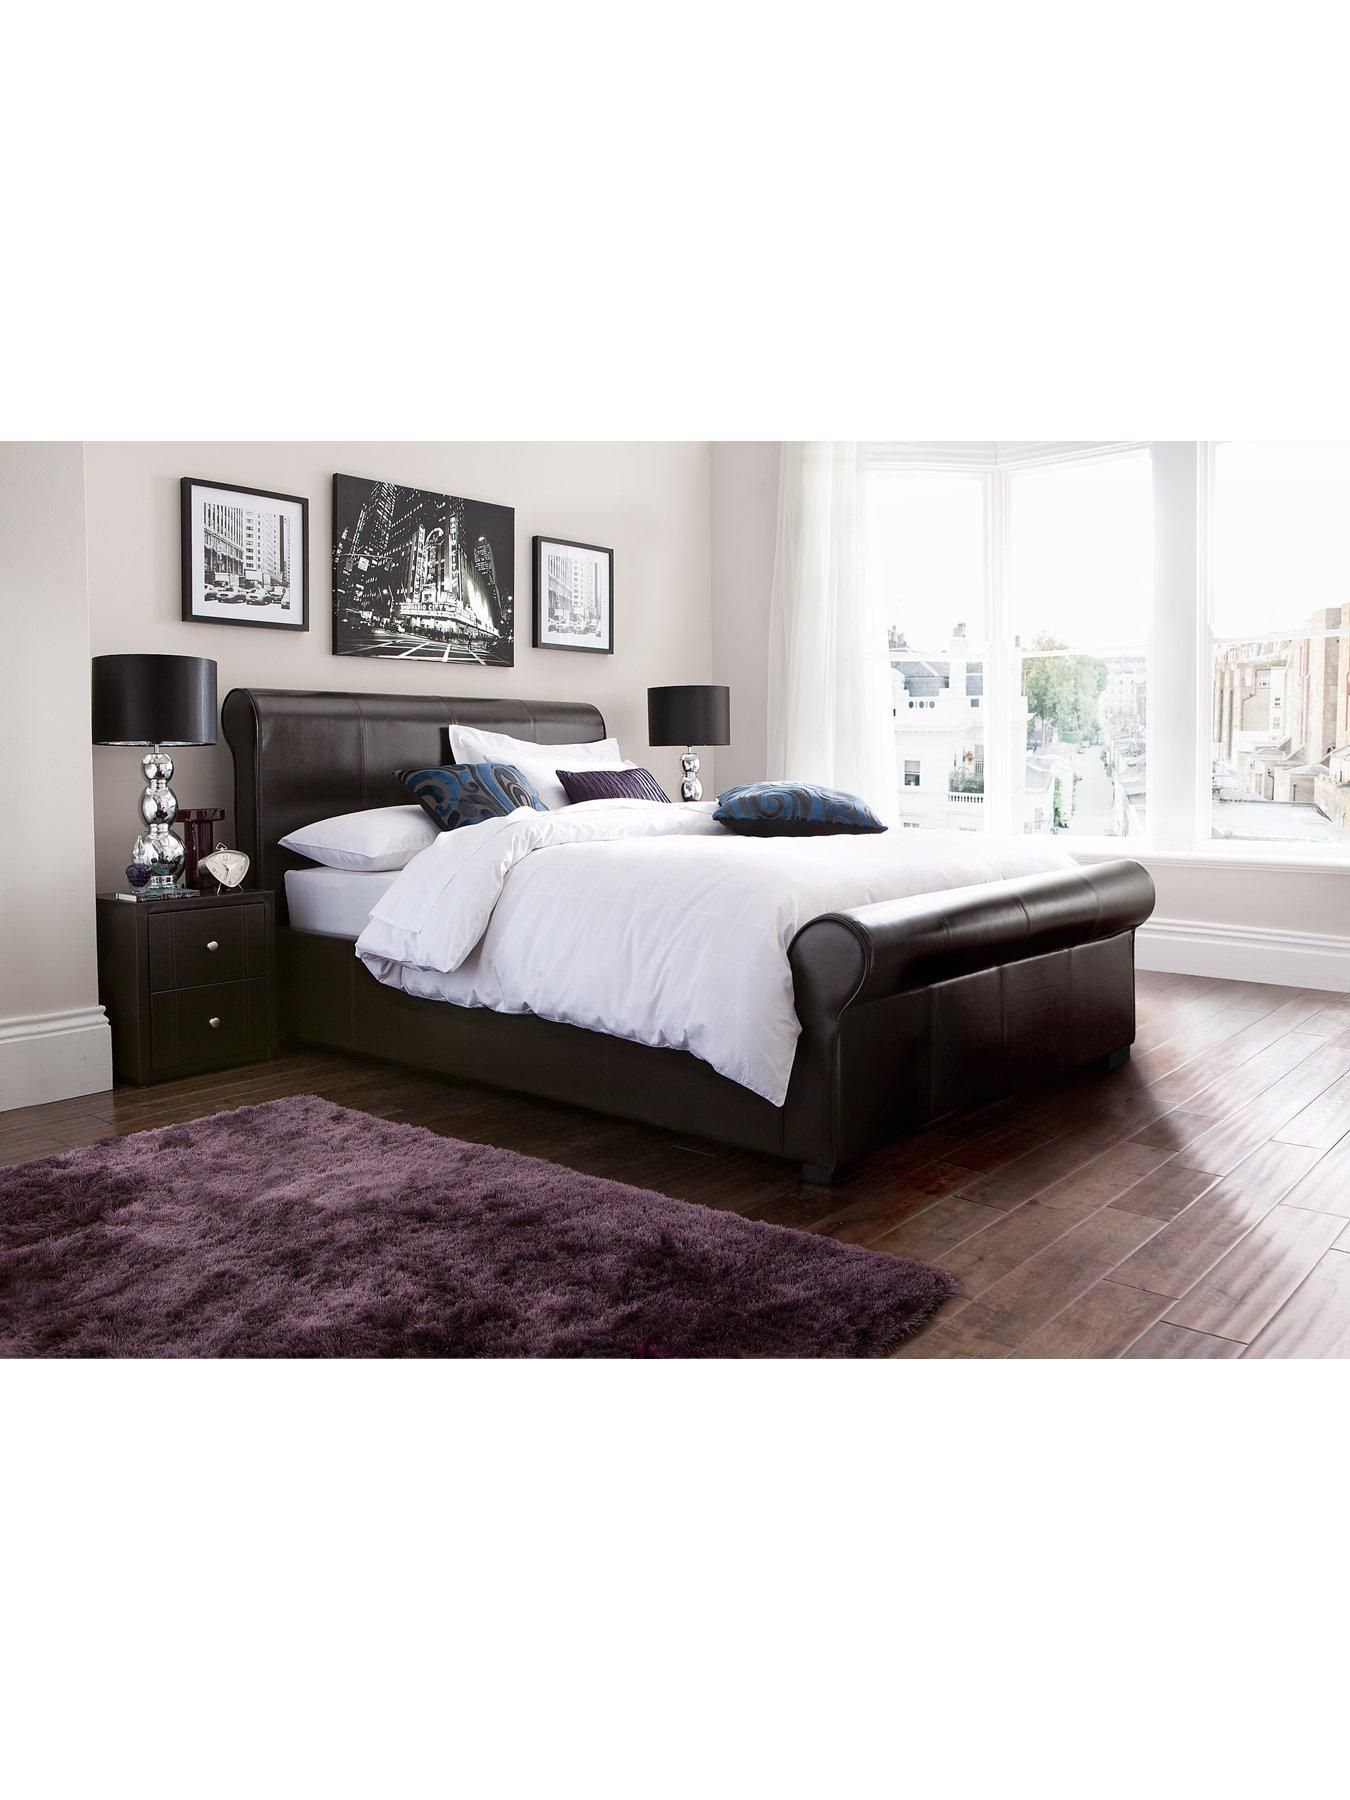 Madrid Storage King Madrid Faux Leather Storage Bed Frame In